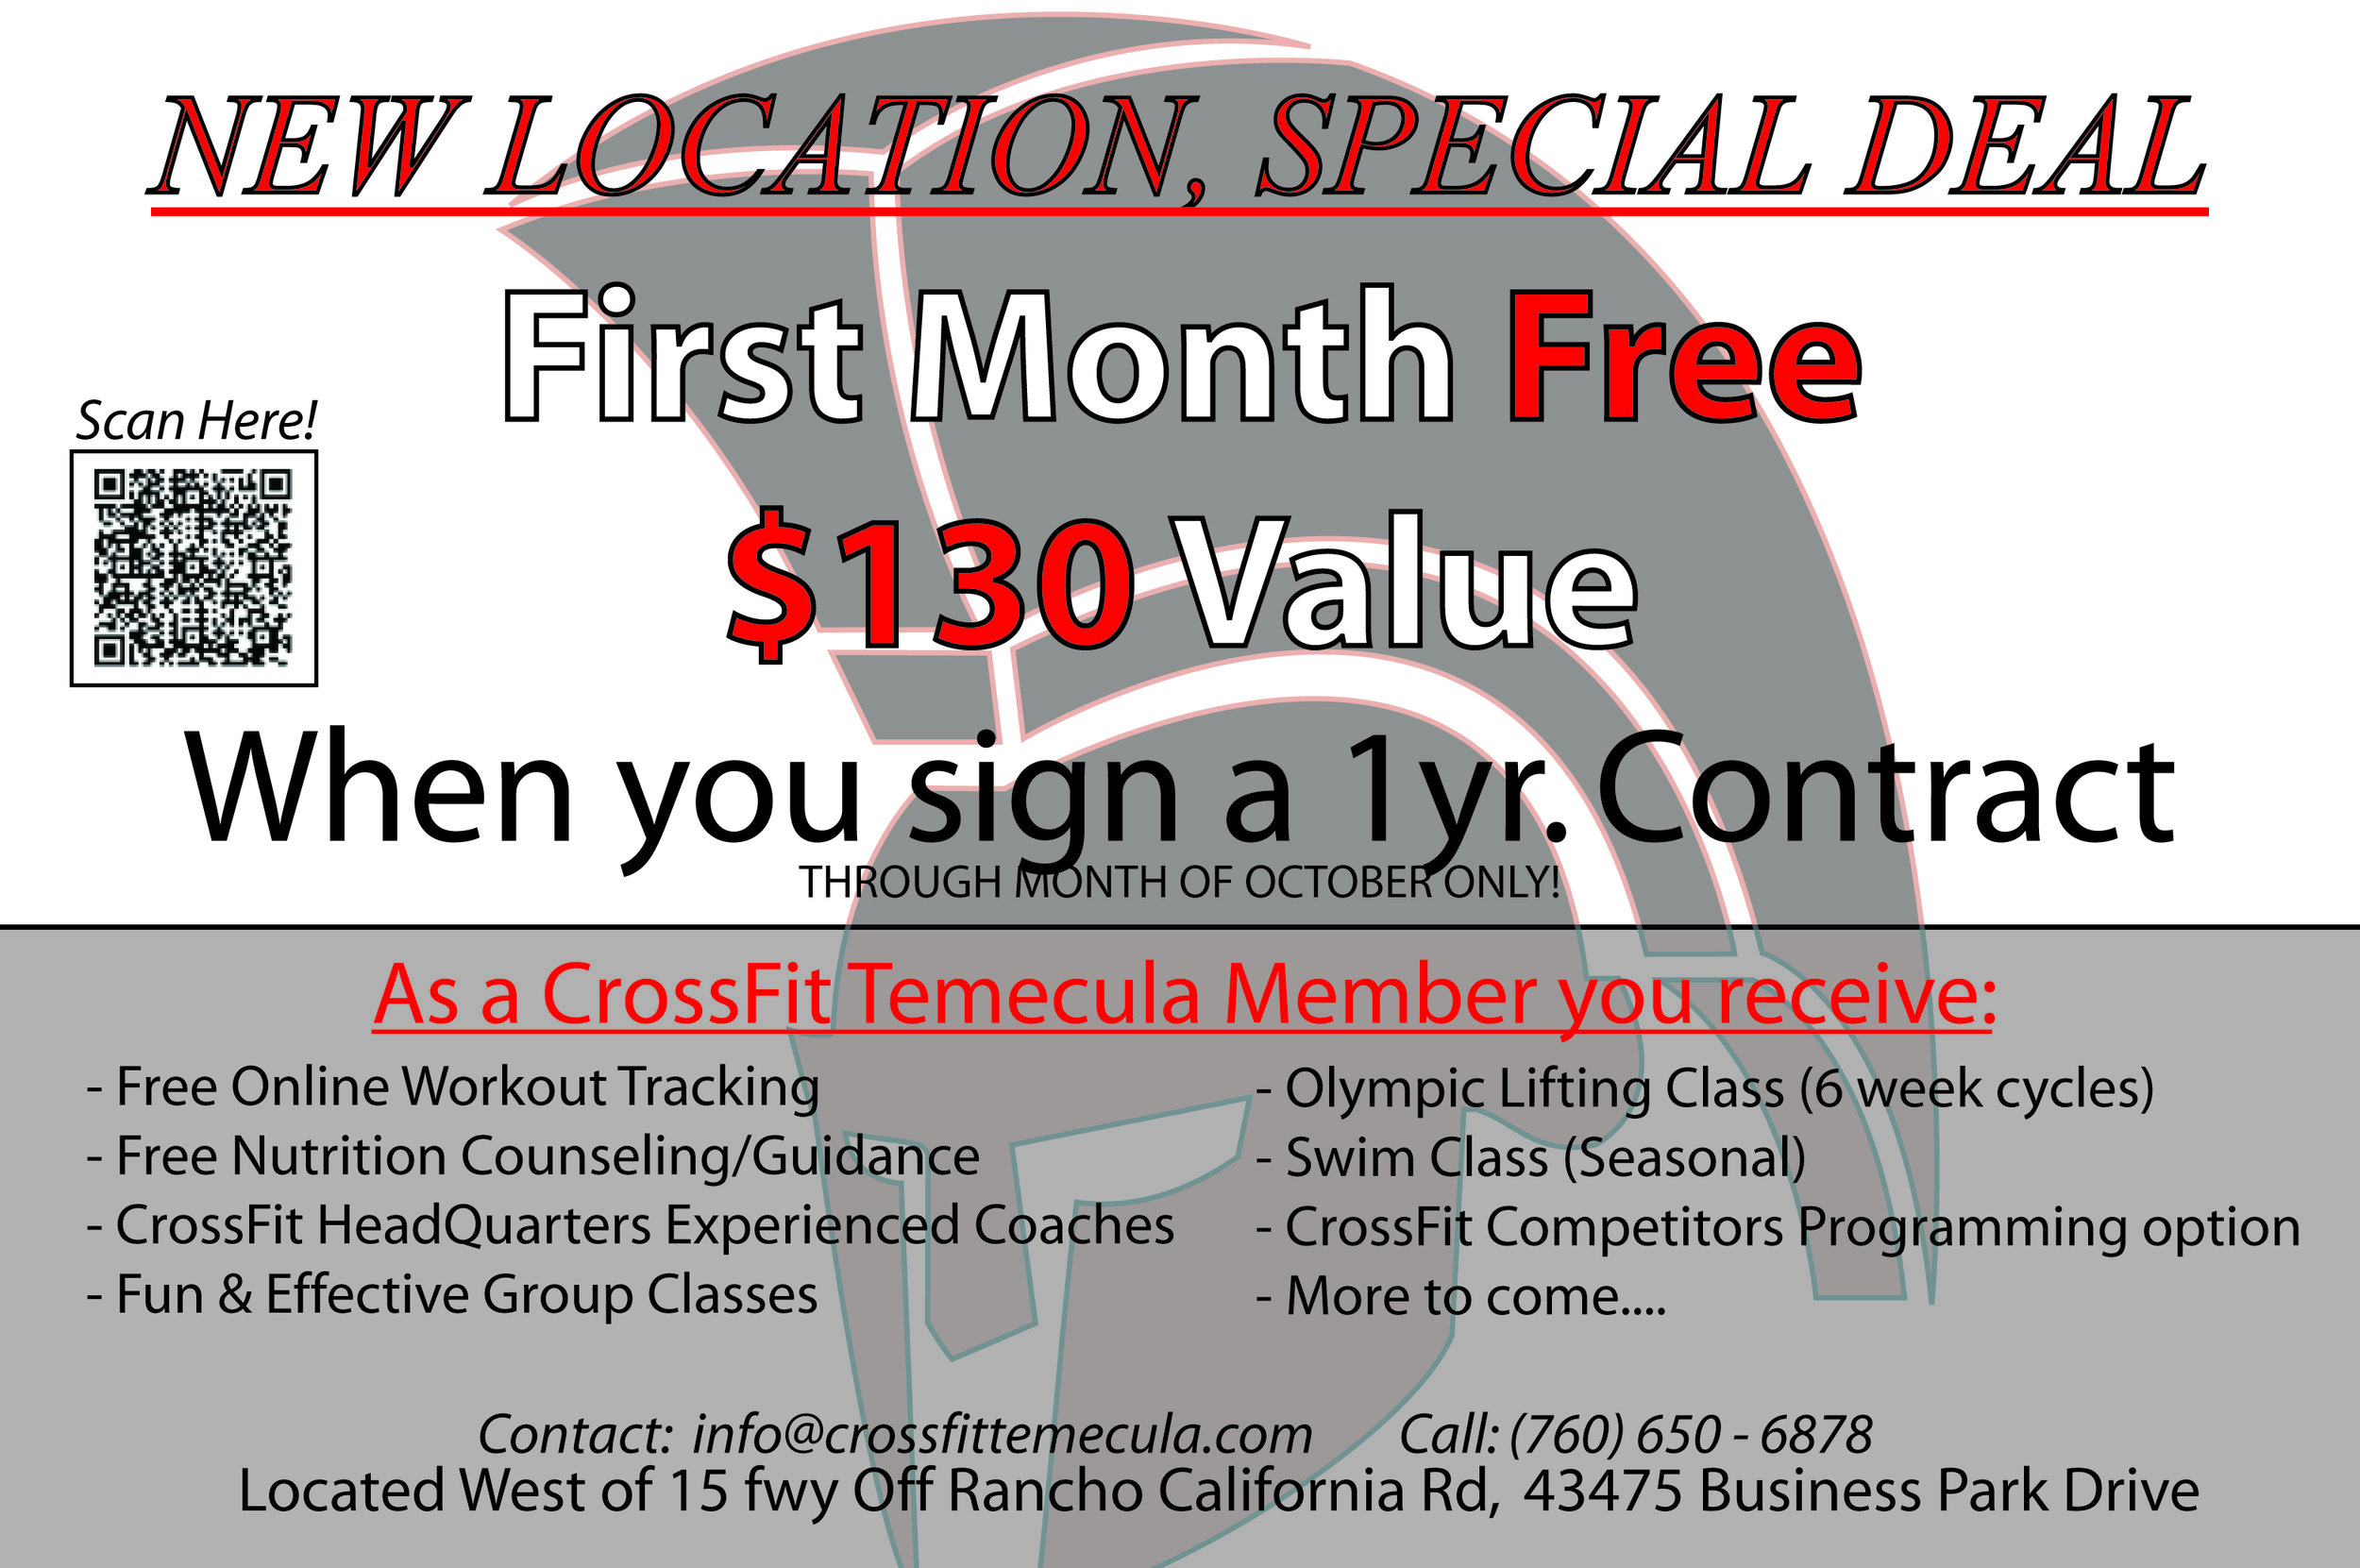 9/25/2014 -WE ARE MOVING!!! — CrossFit Temecula